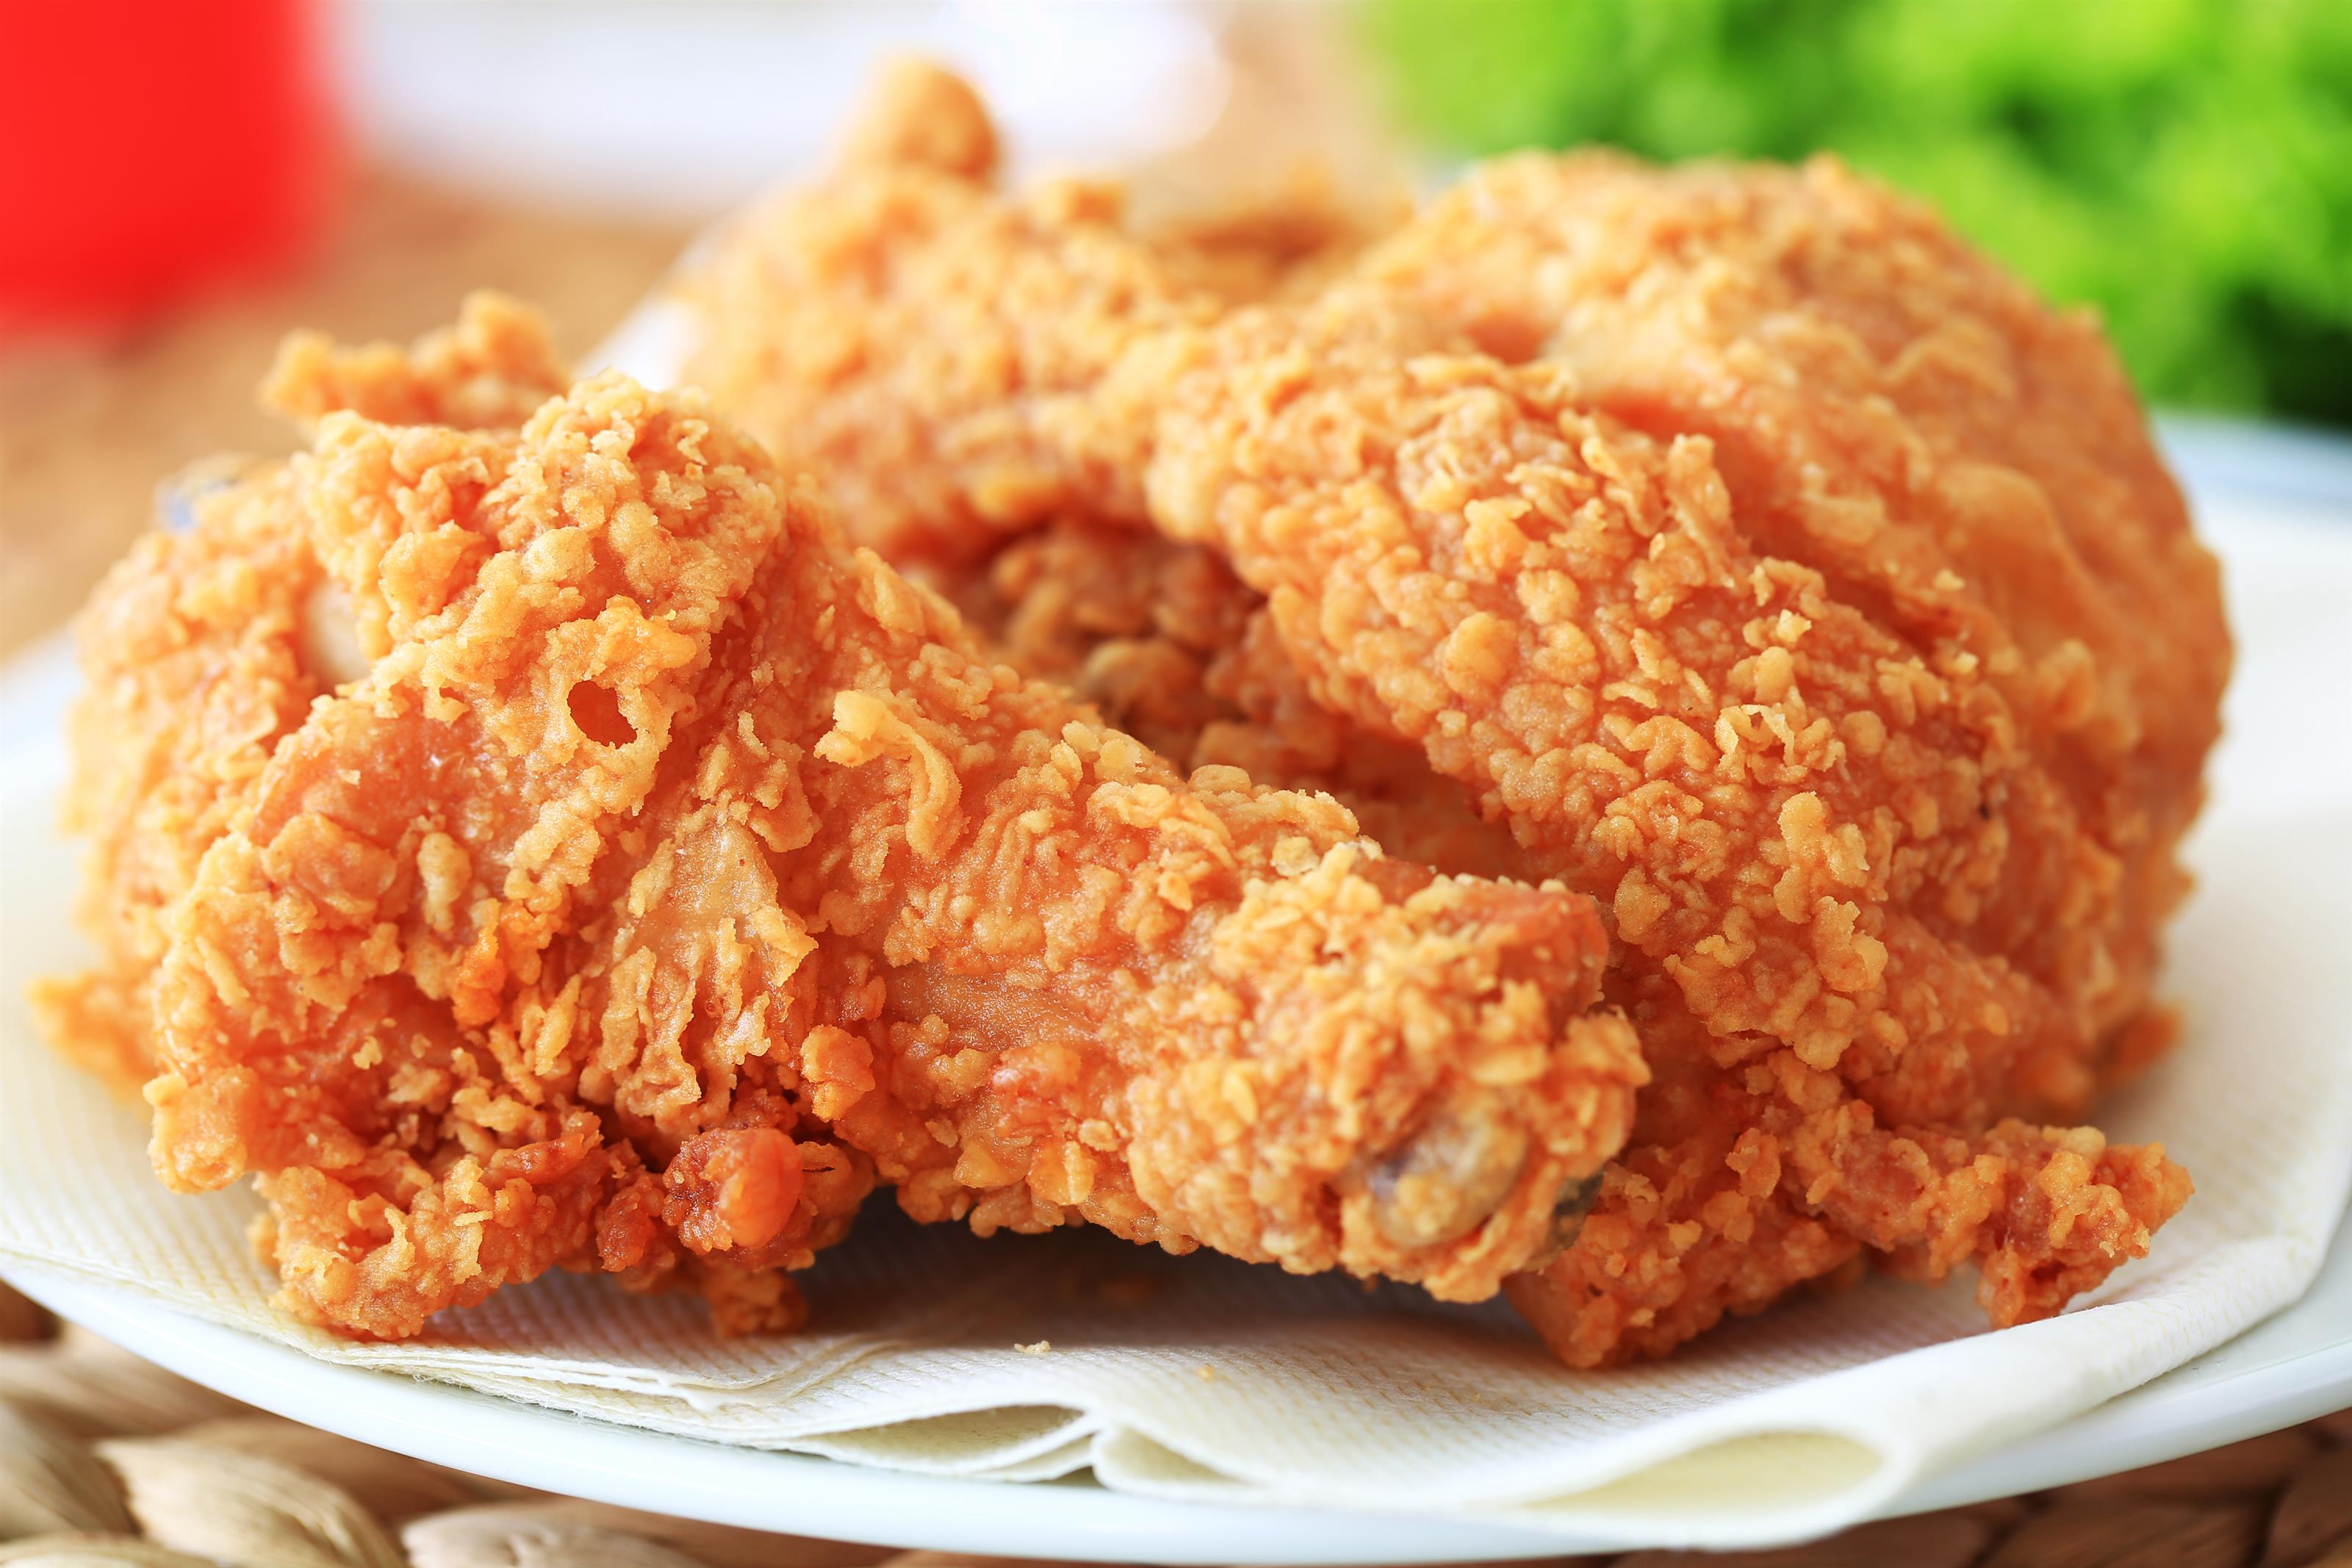 Fried Chicken_100605649